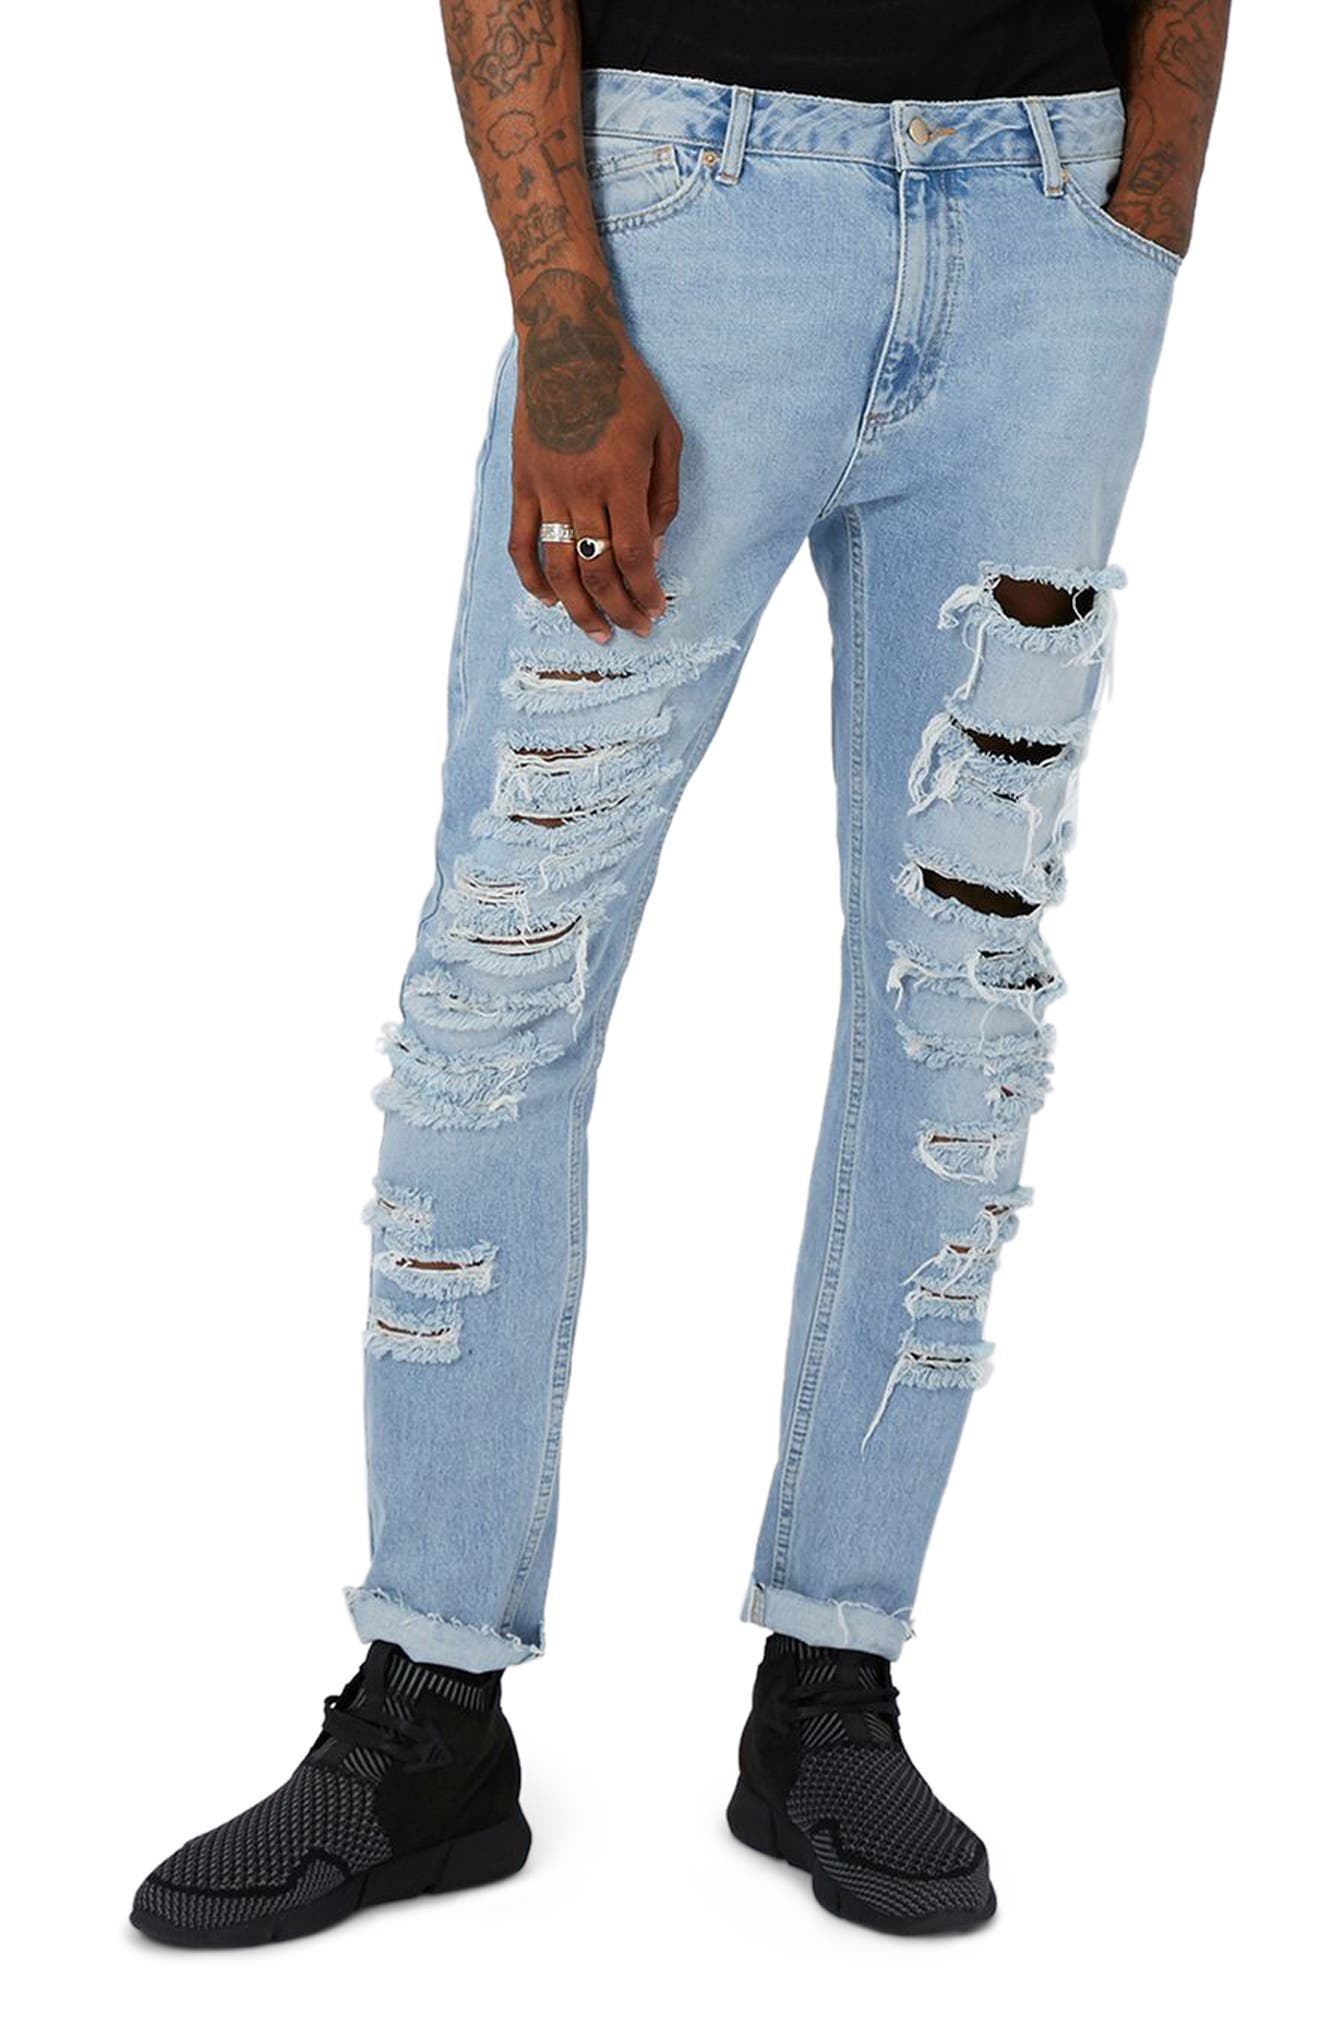 AAA Collection Shredded Skinny Jeans,                             Main thumbnail 1, color,                             400